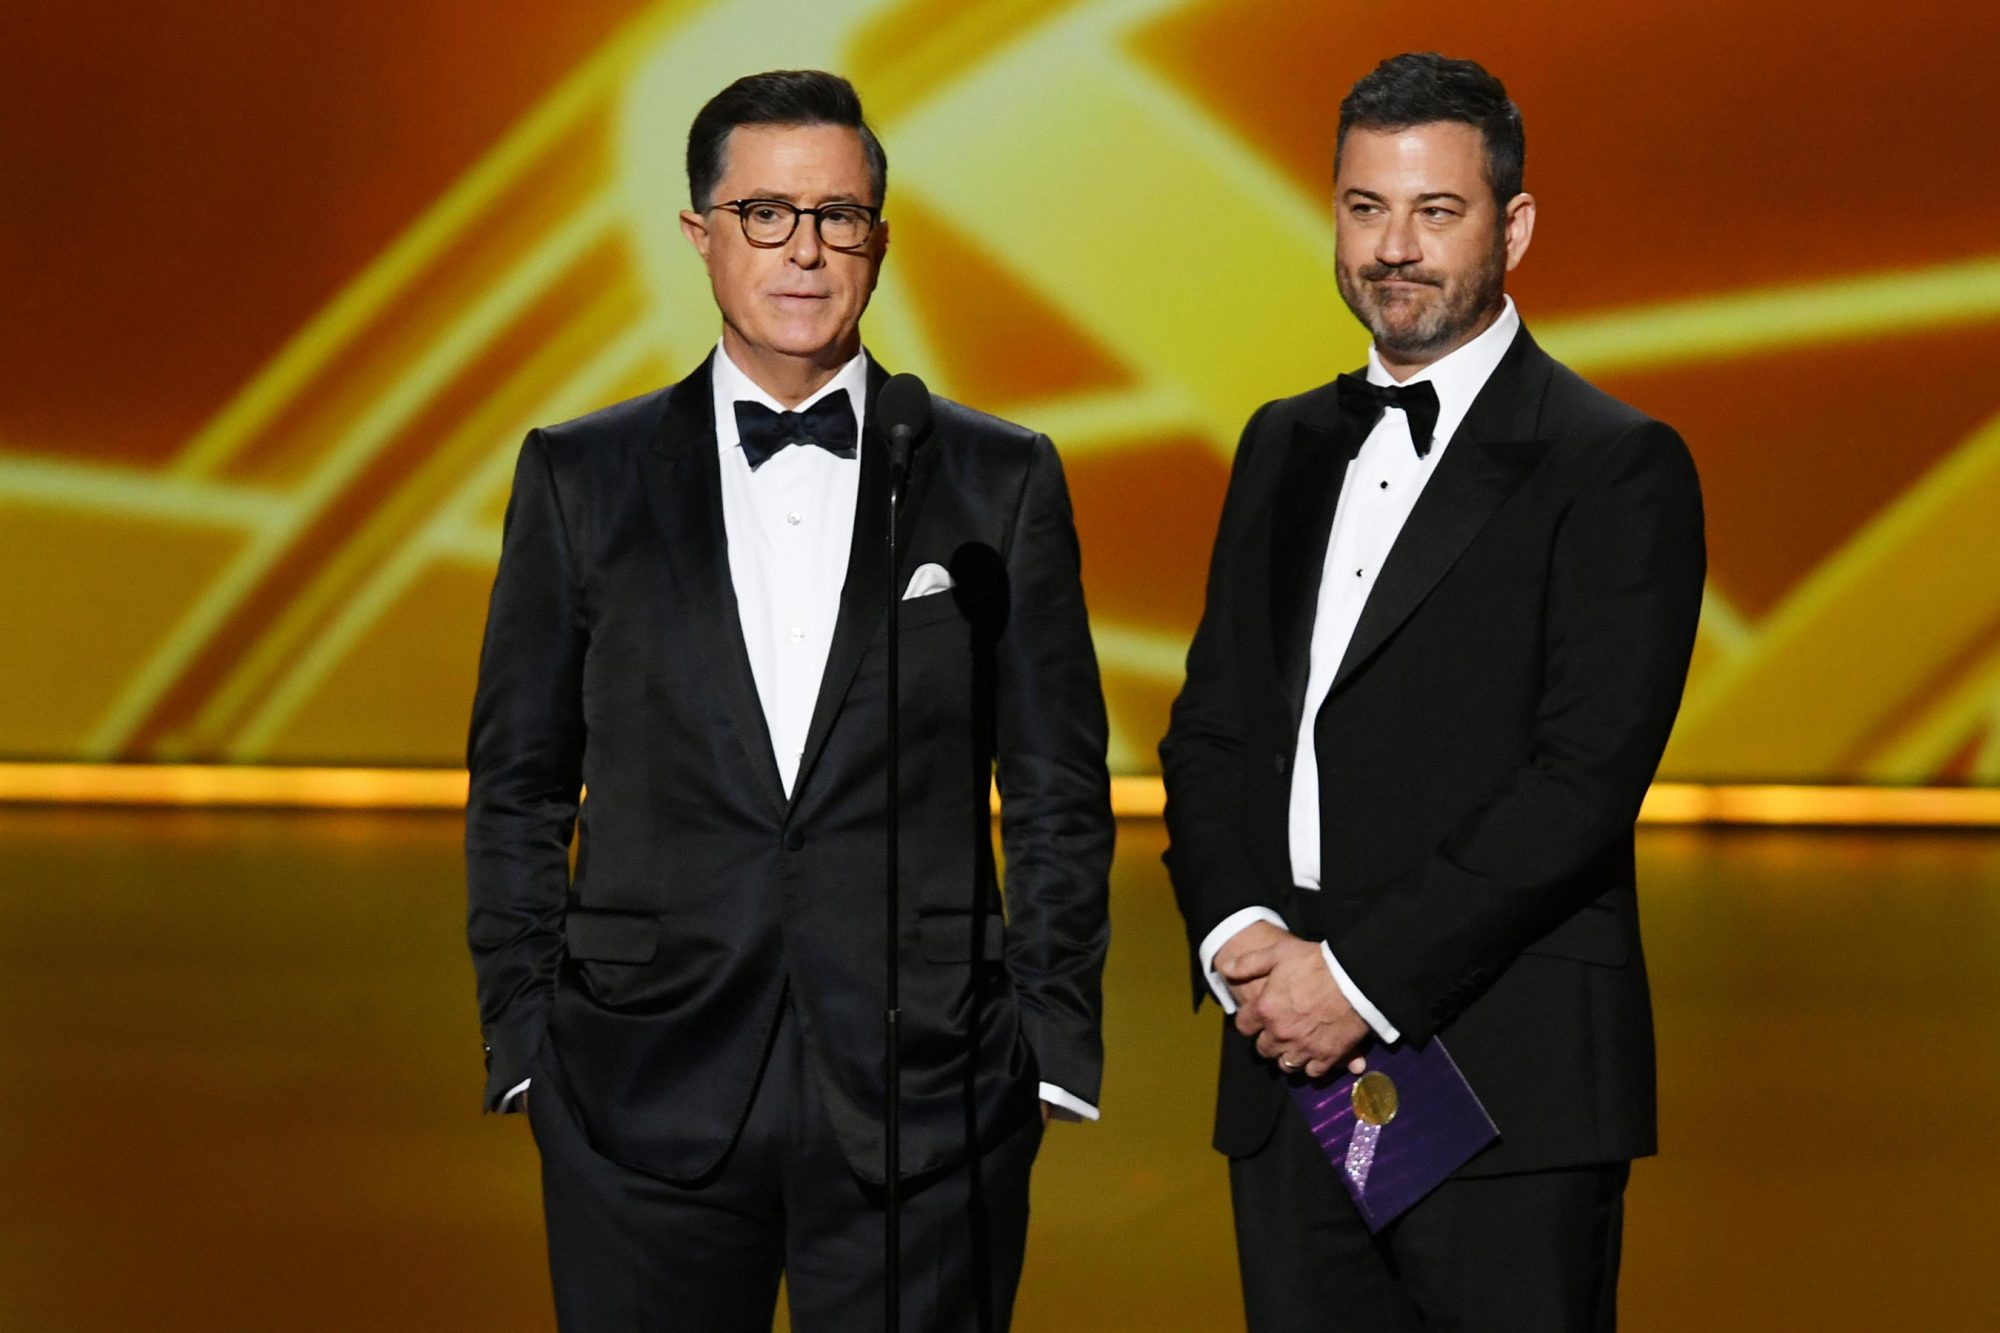 Stephen Colbert and Jimmy Kimmel